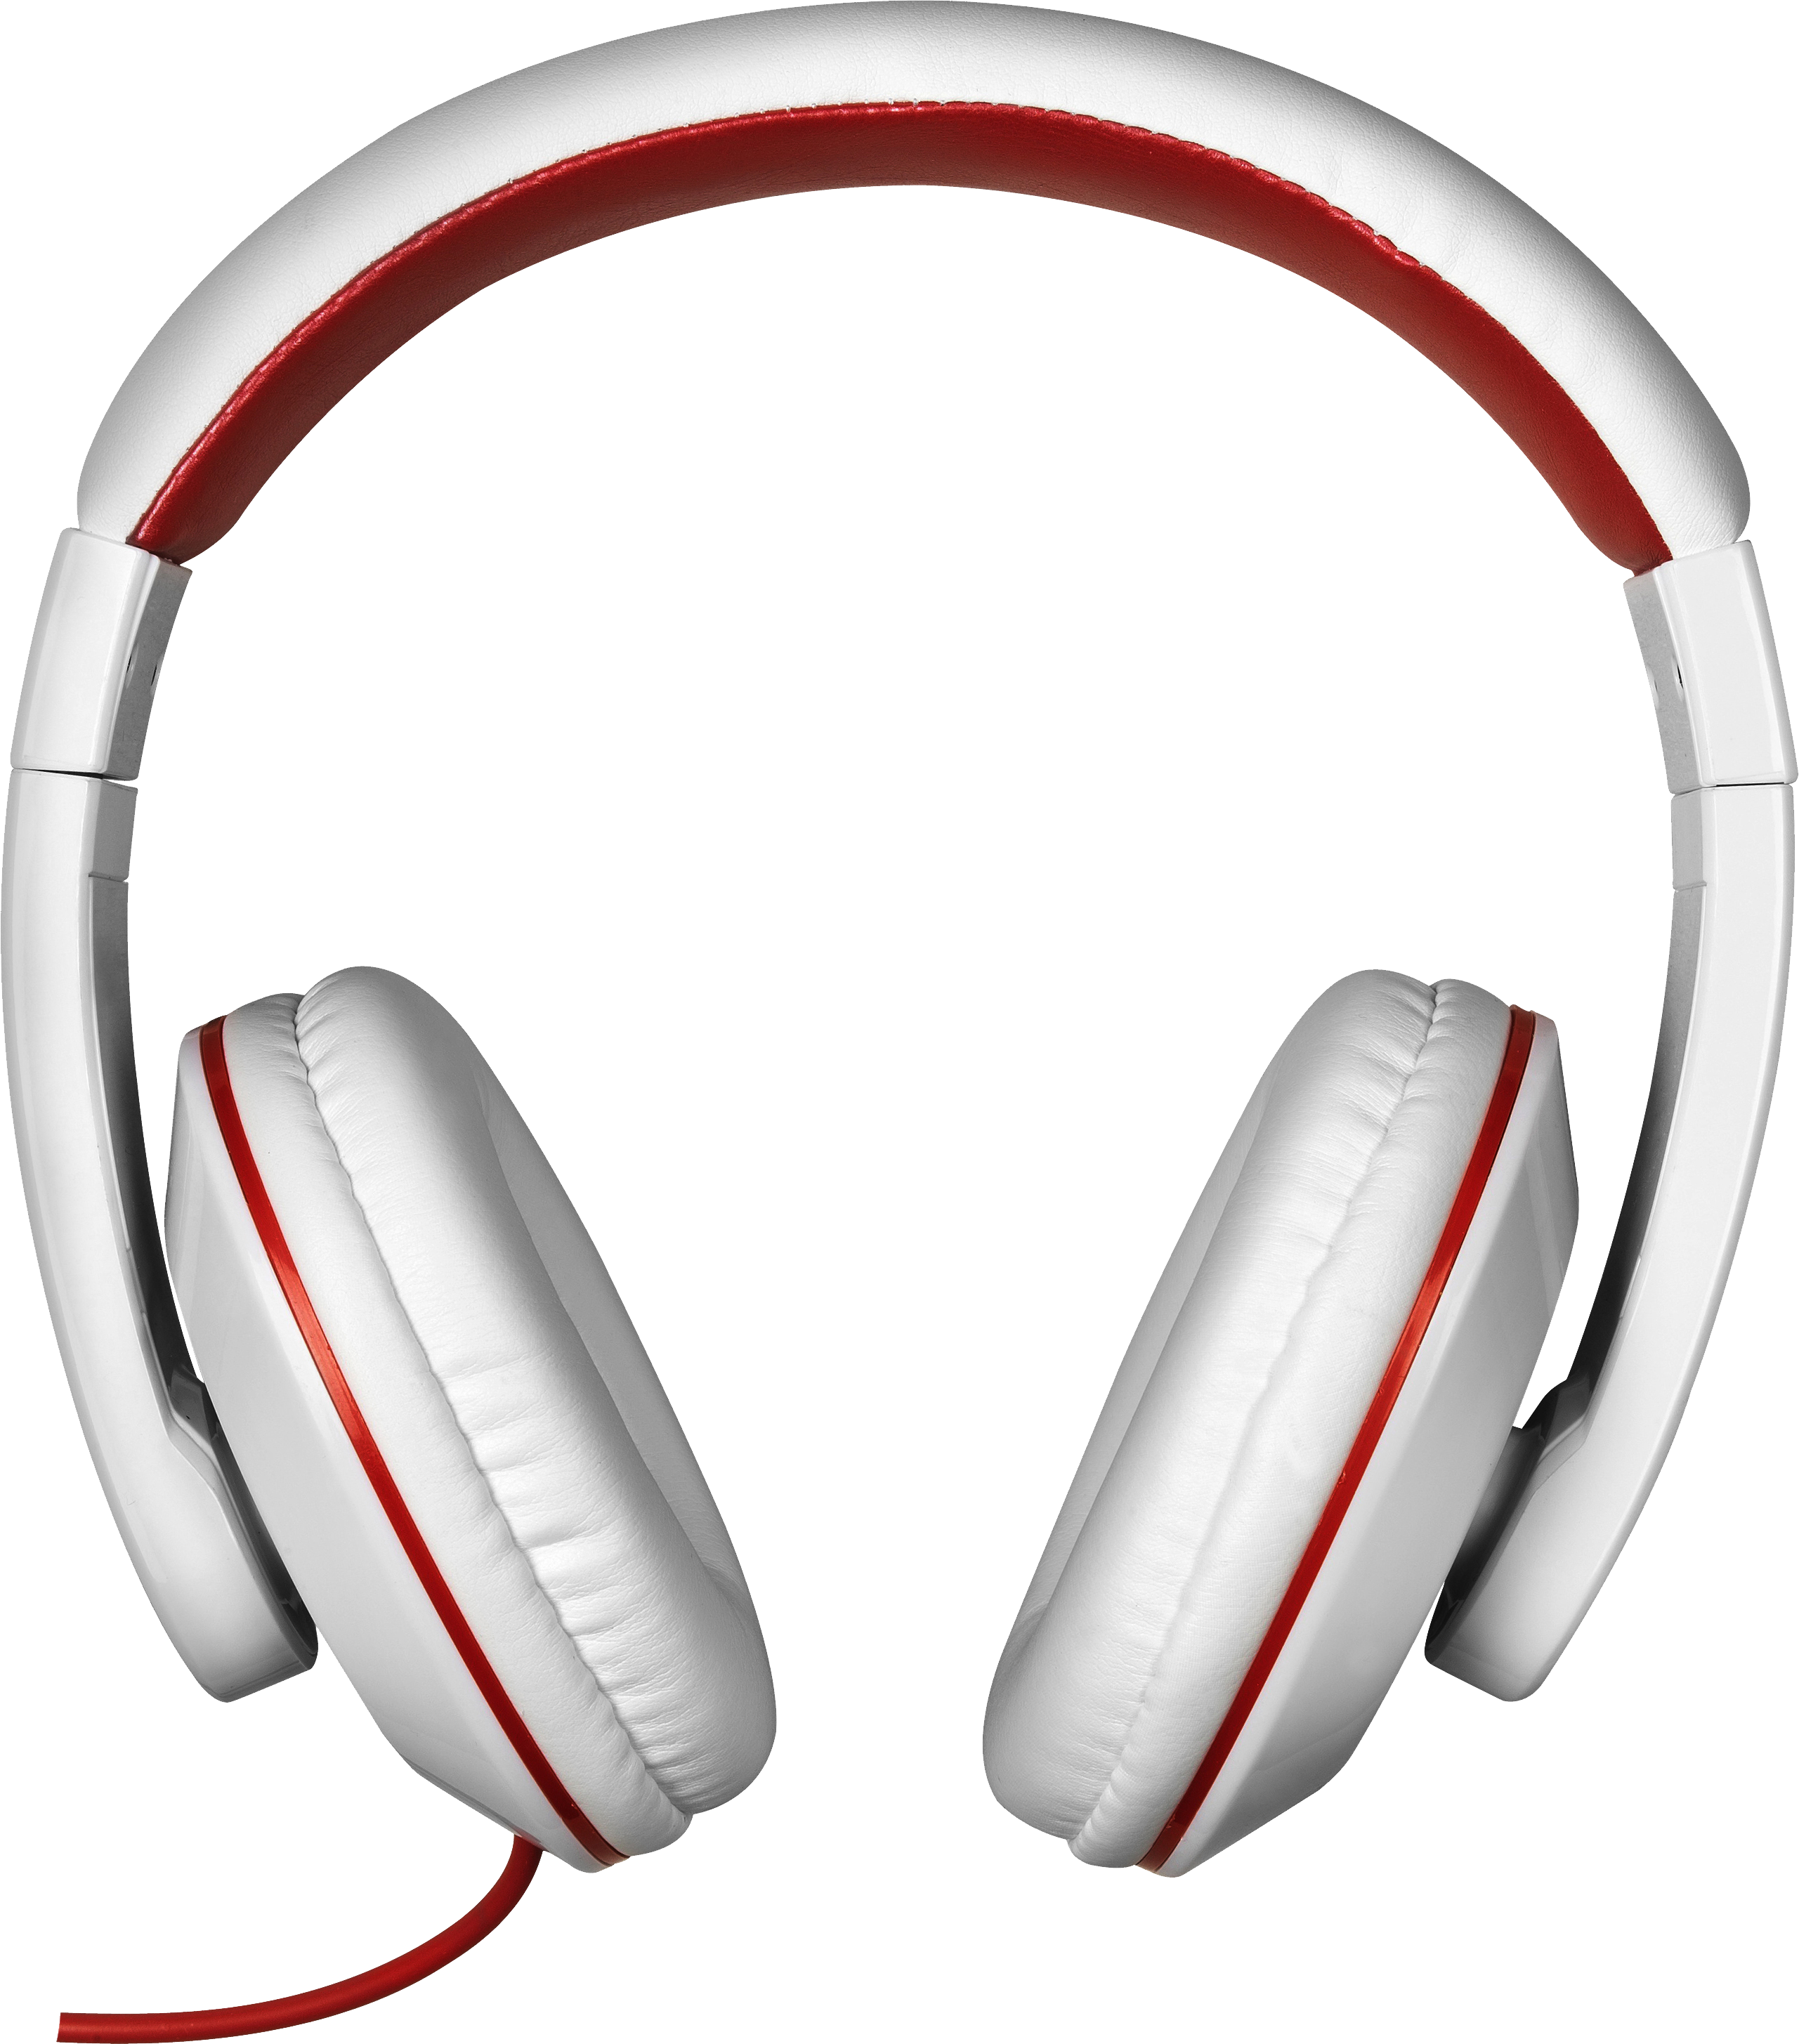 Earphone PNG Images Transparent Free Download.